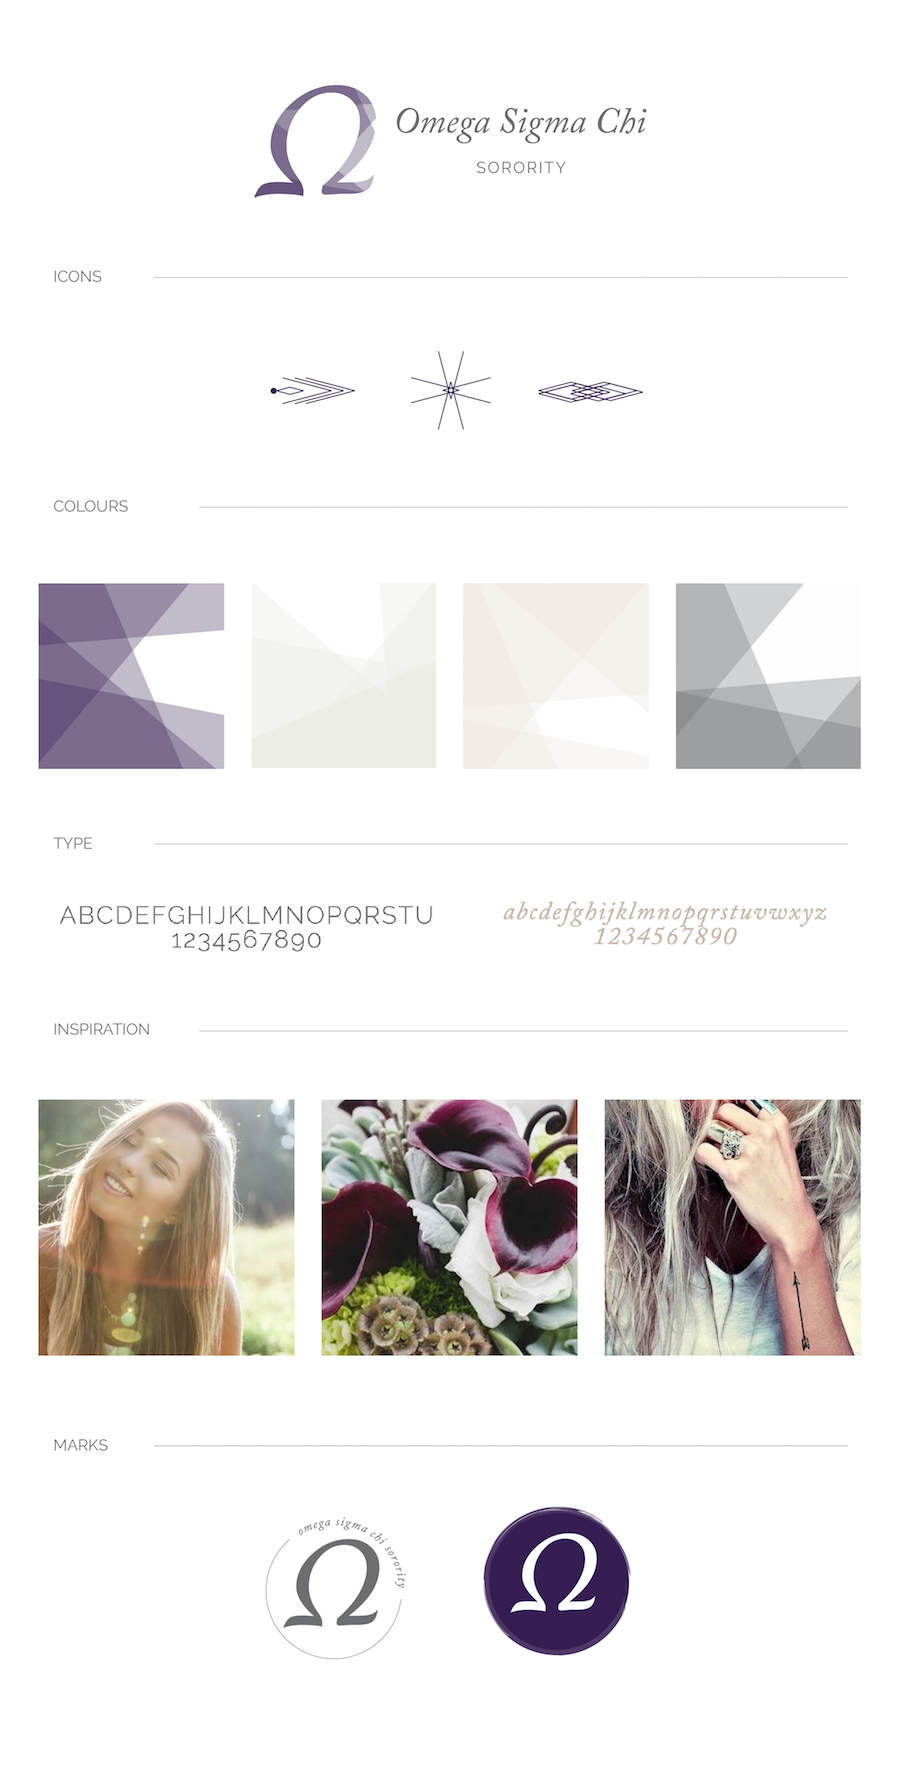 mood board and color palette - whimsical, feminine, purple